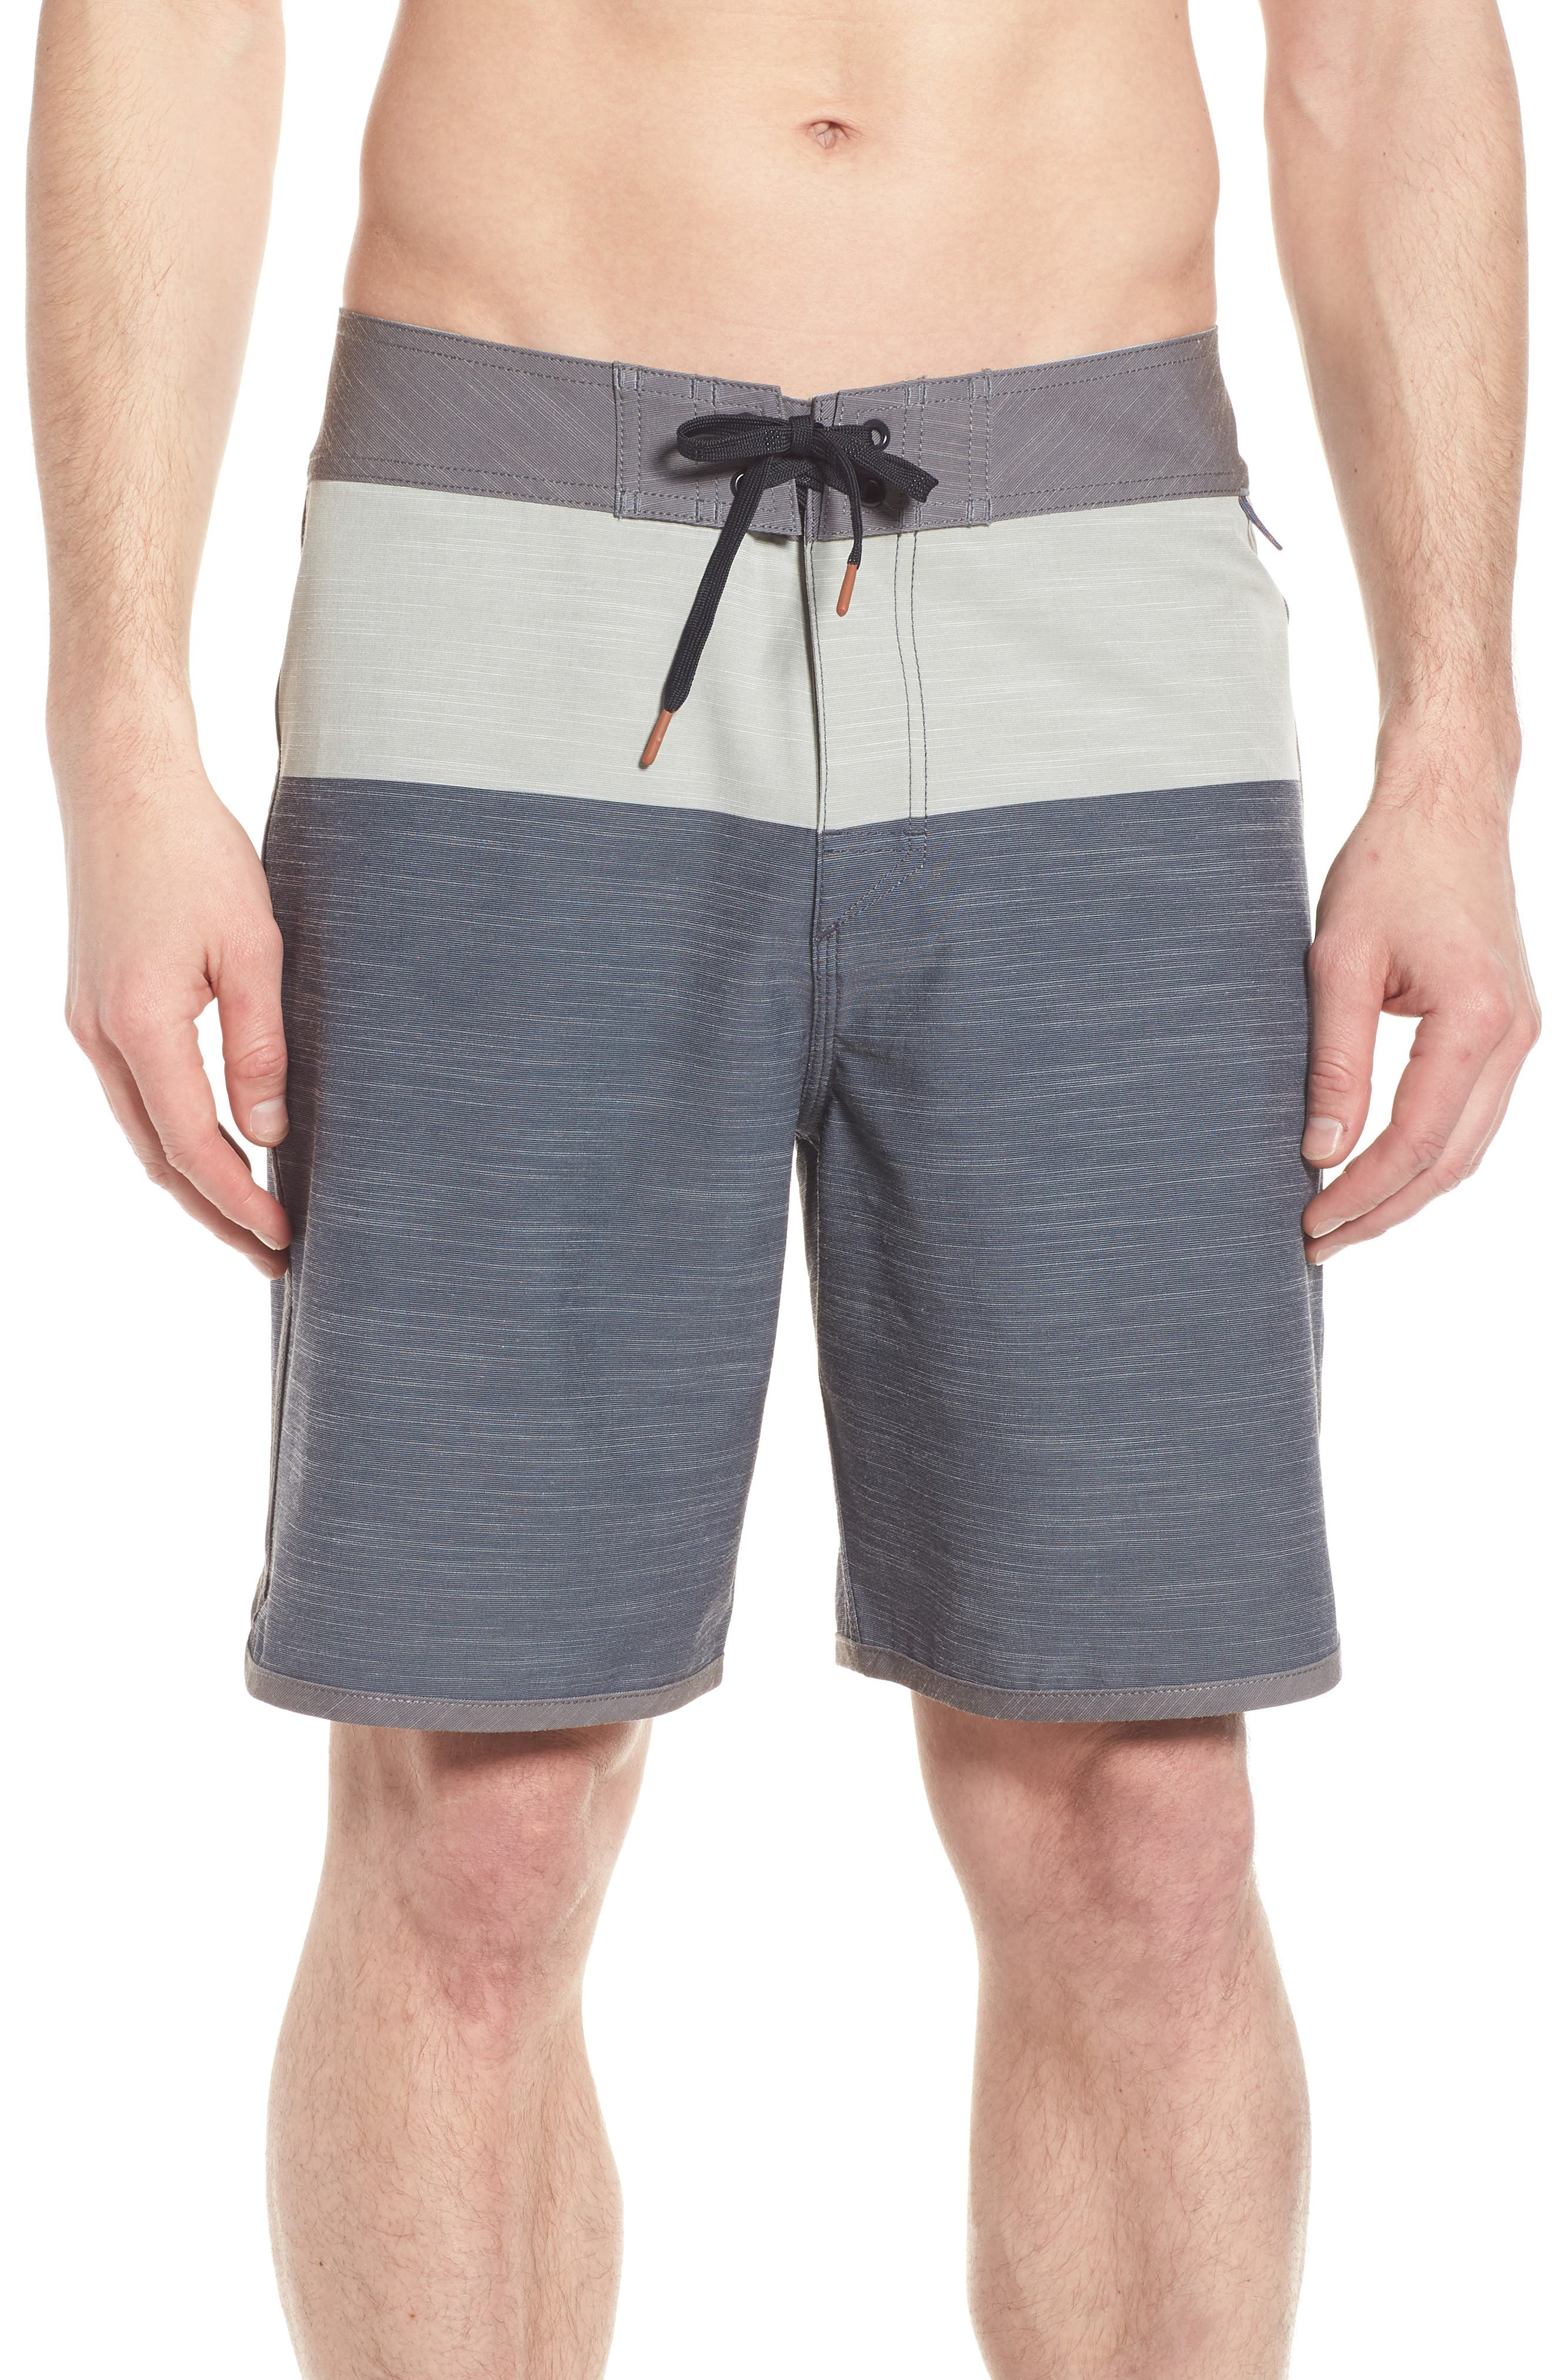 Beachcomber Board Shorts,                             Main thumbnail 1, color,                             Charcoal